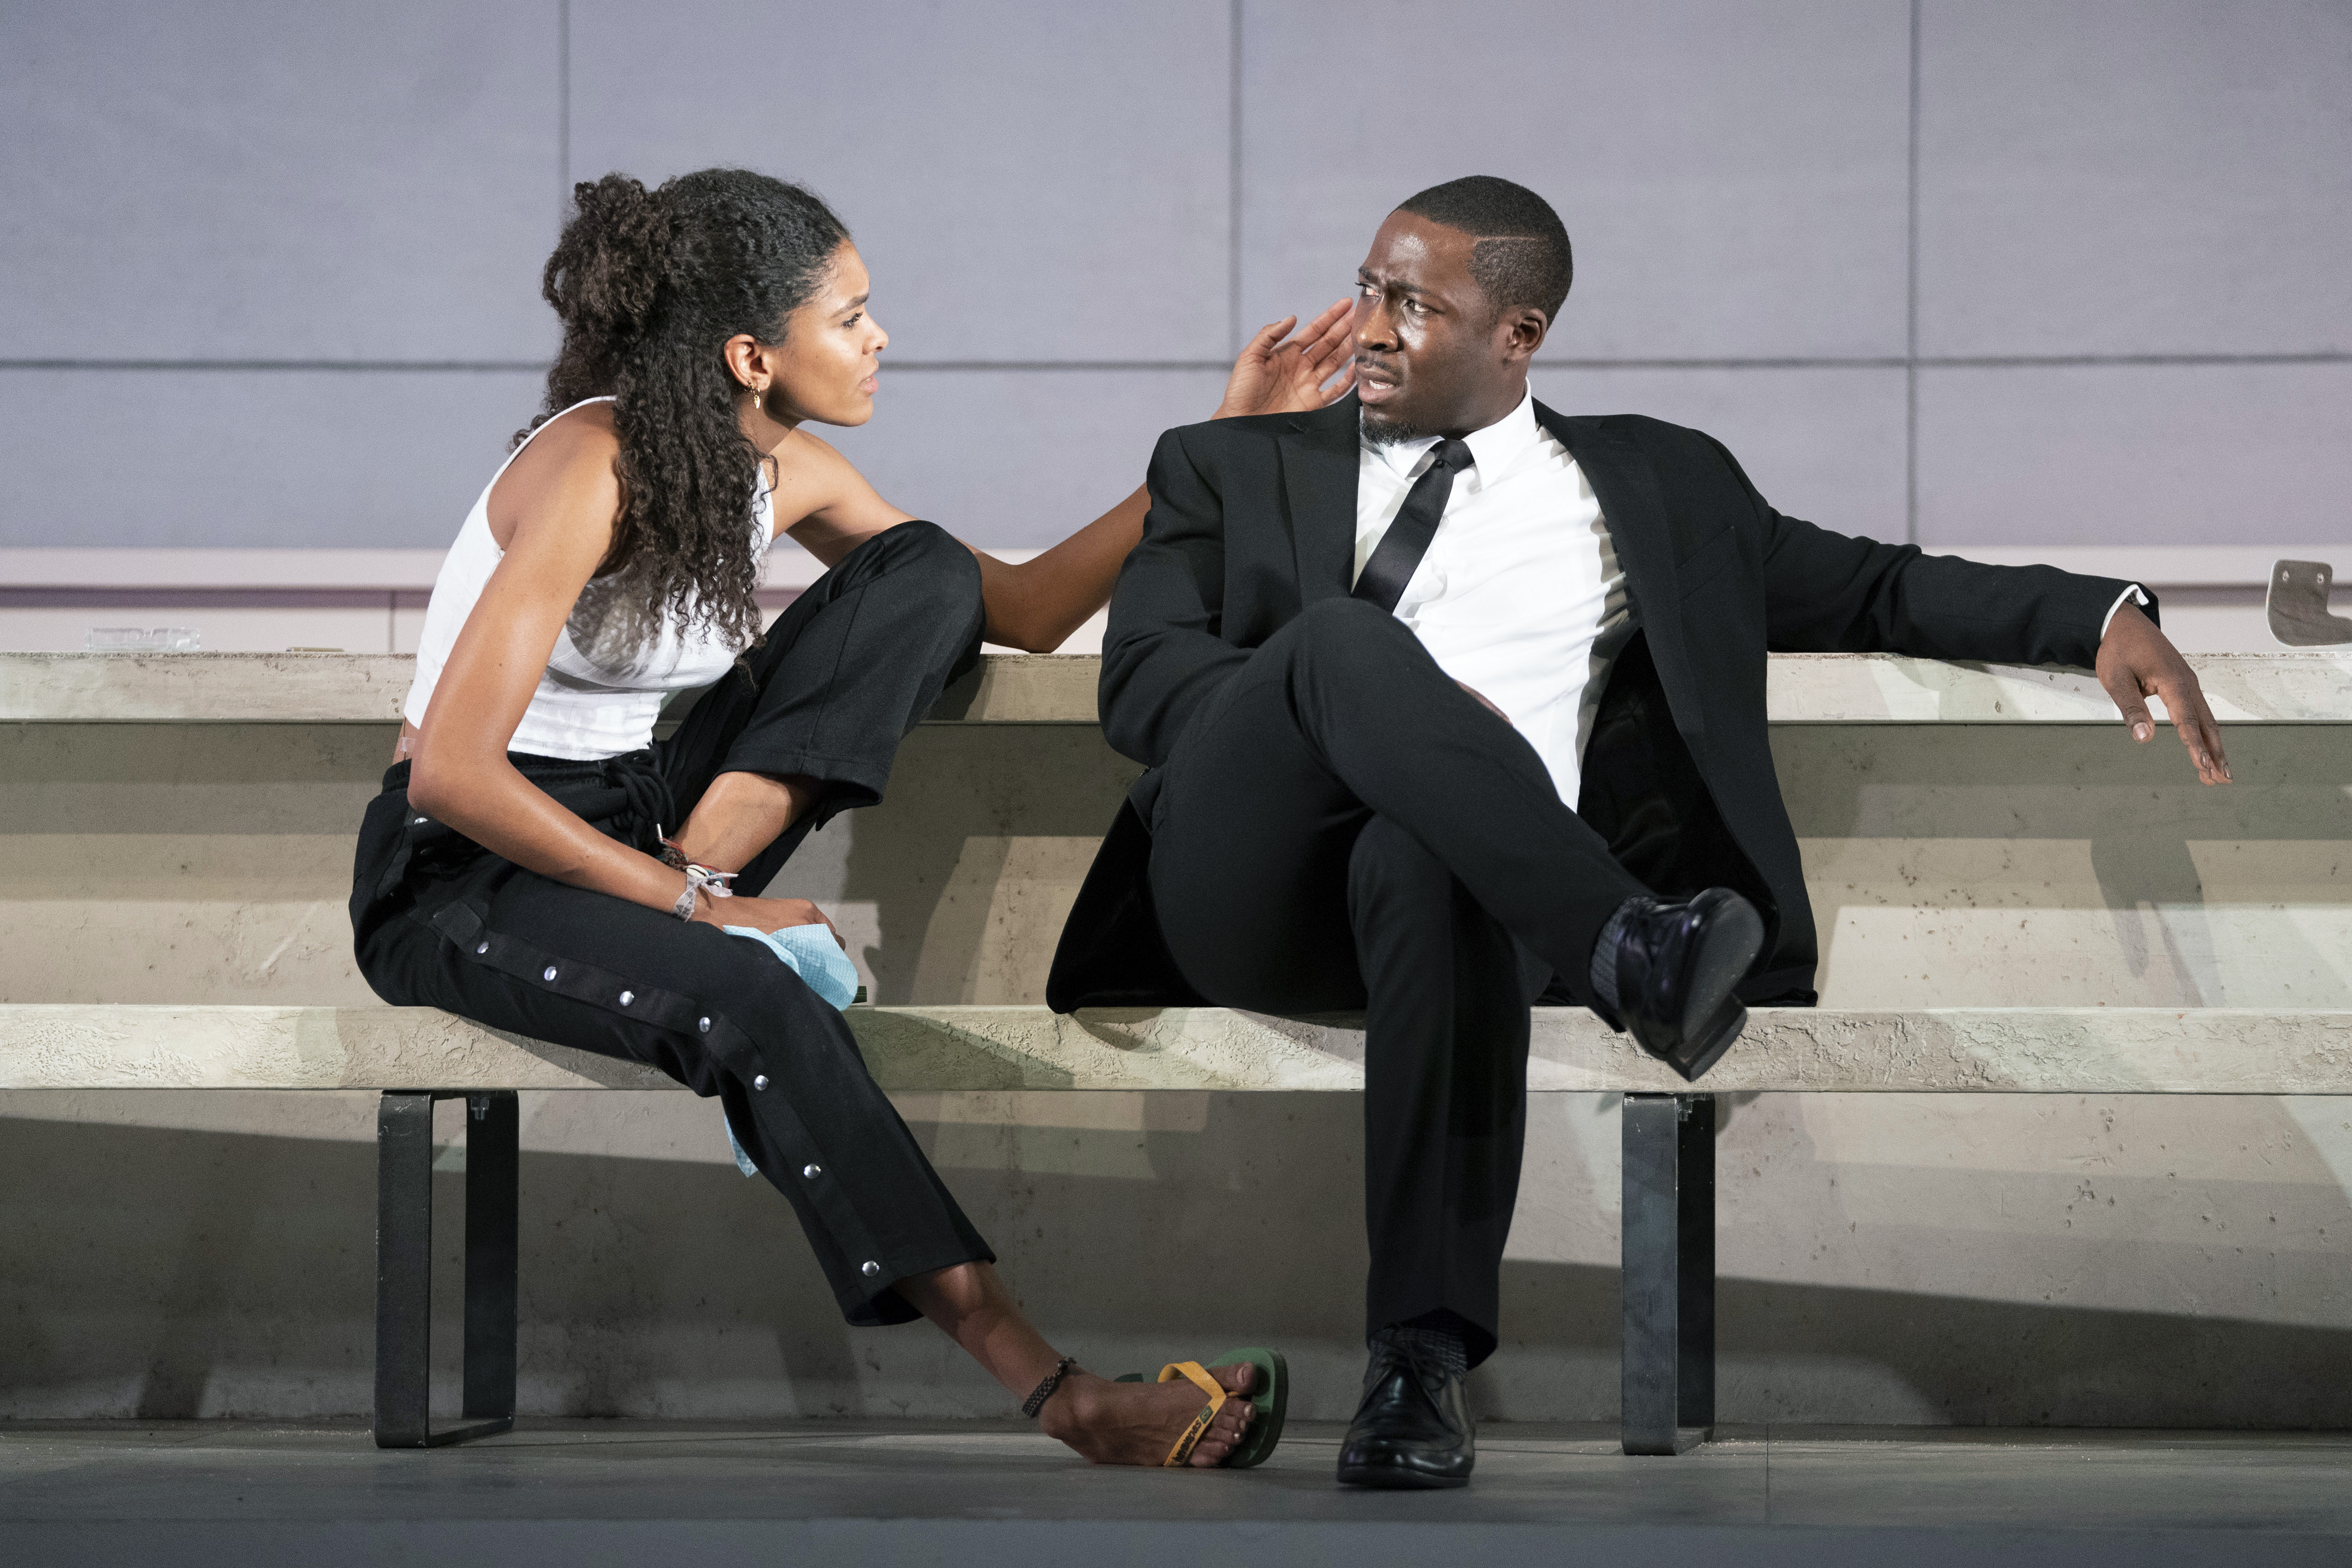 Eric Kofi Abrefa as Jean and Thalissa Teixeira as Kristina in Julie at the National Theatre (c) Richard H Smith